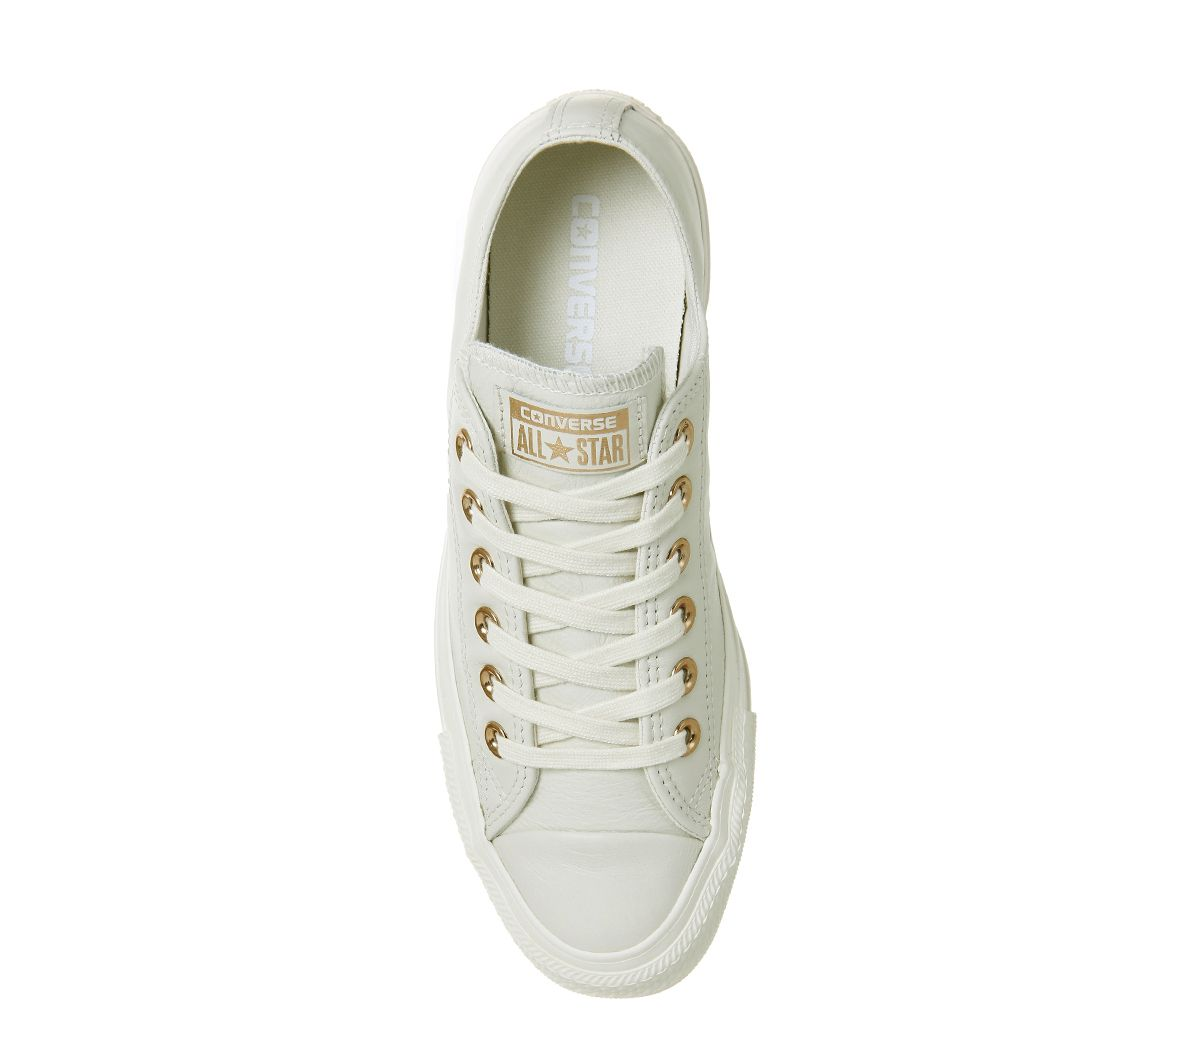 2d862ffa7665 Converse All Star Low Leather Egret Rose Gold Exclusive - Hers trainers